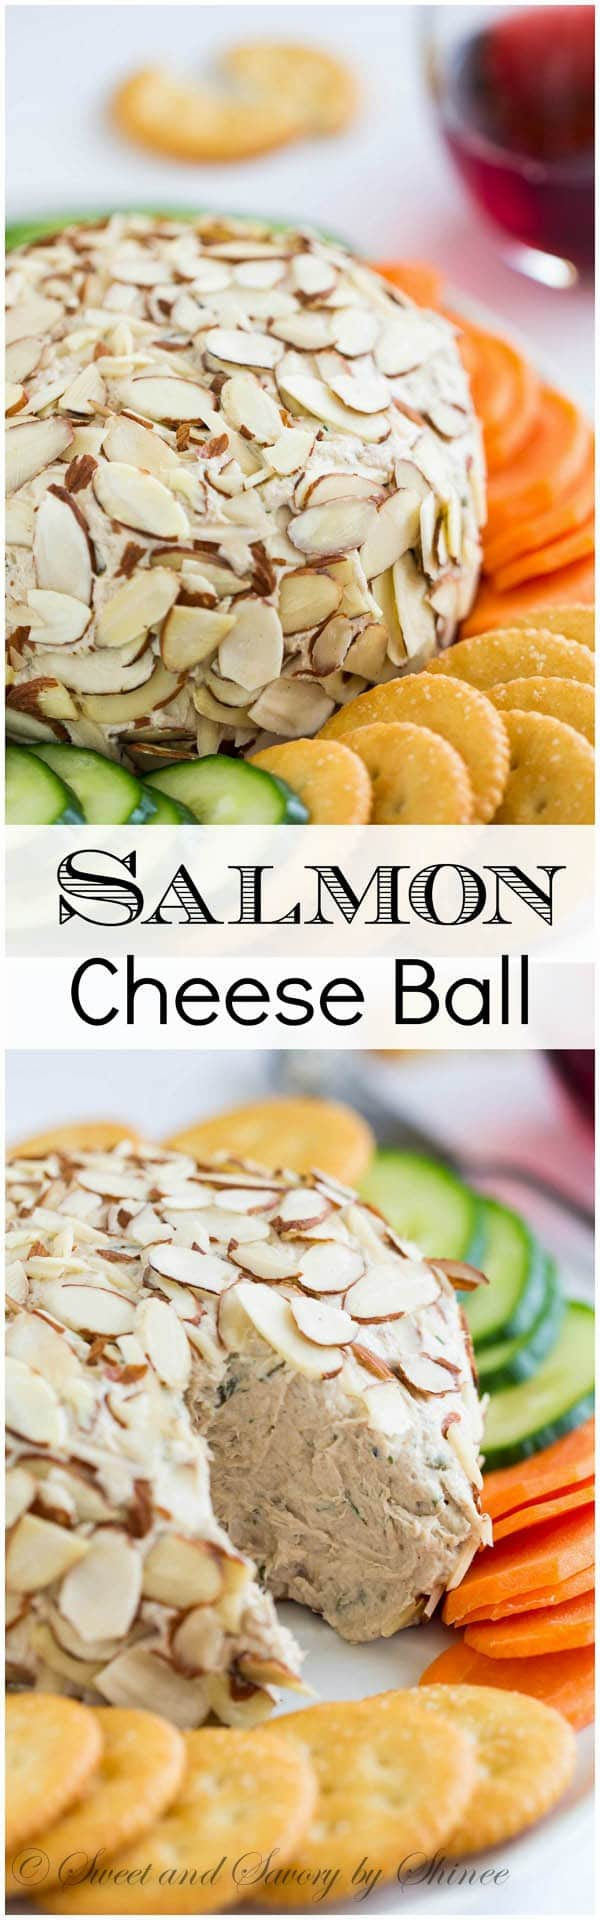 Ton of flavors and texture in this easy-to-make salmon cheese ball. Learn how I easily shape this into a ball and roll it in the almonds. (I know, it can be tricky!)